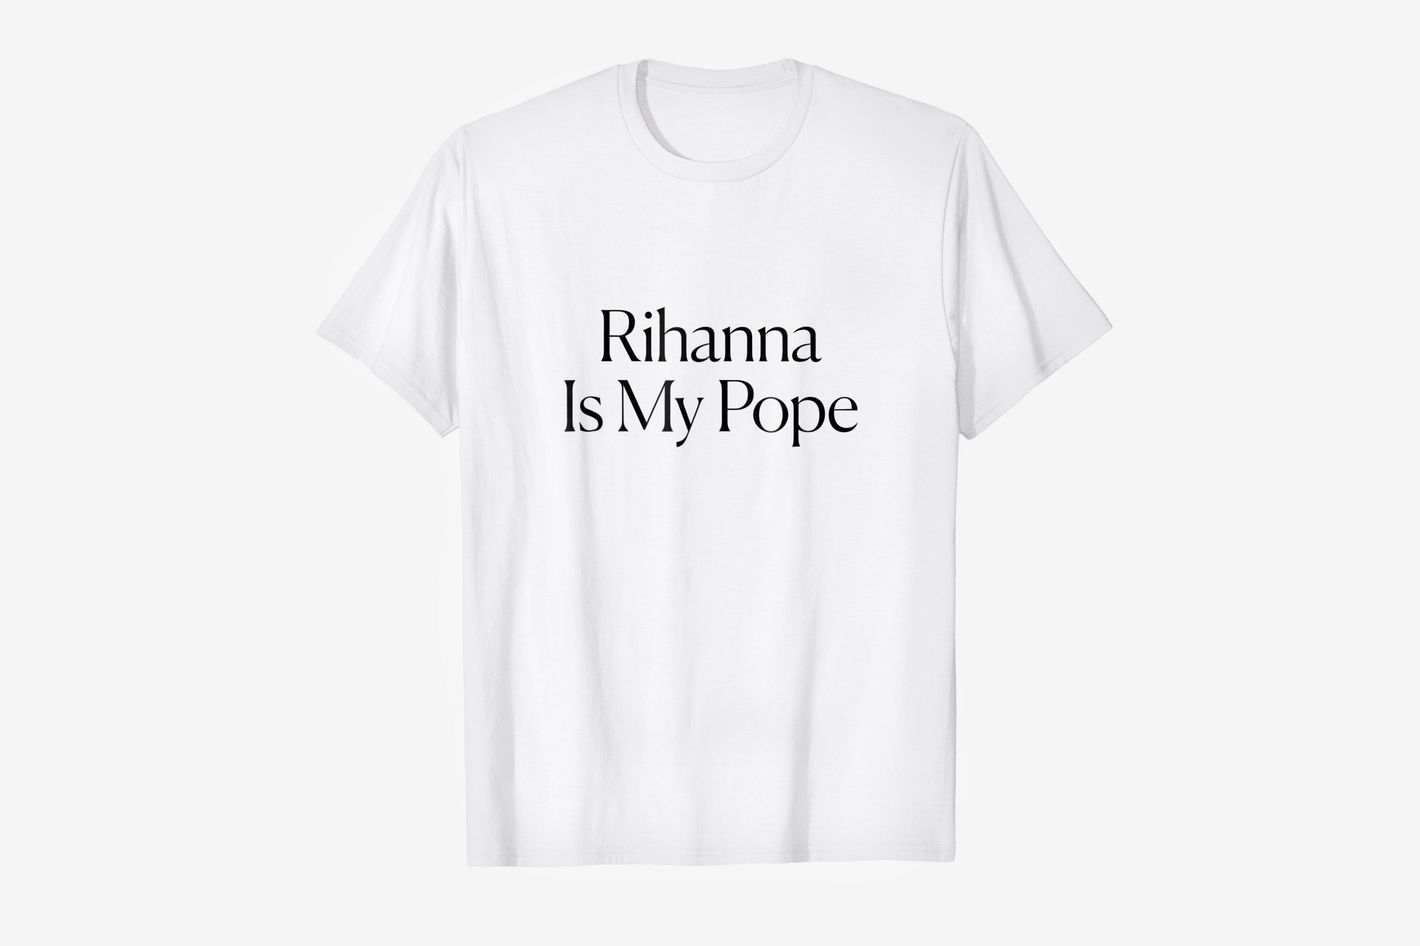 Rihanna Is My Pope Tee